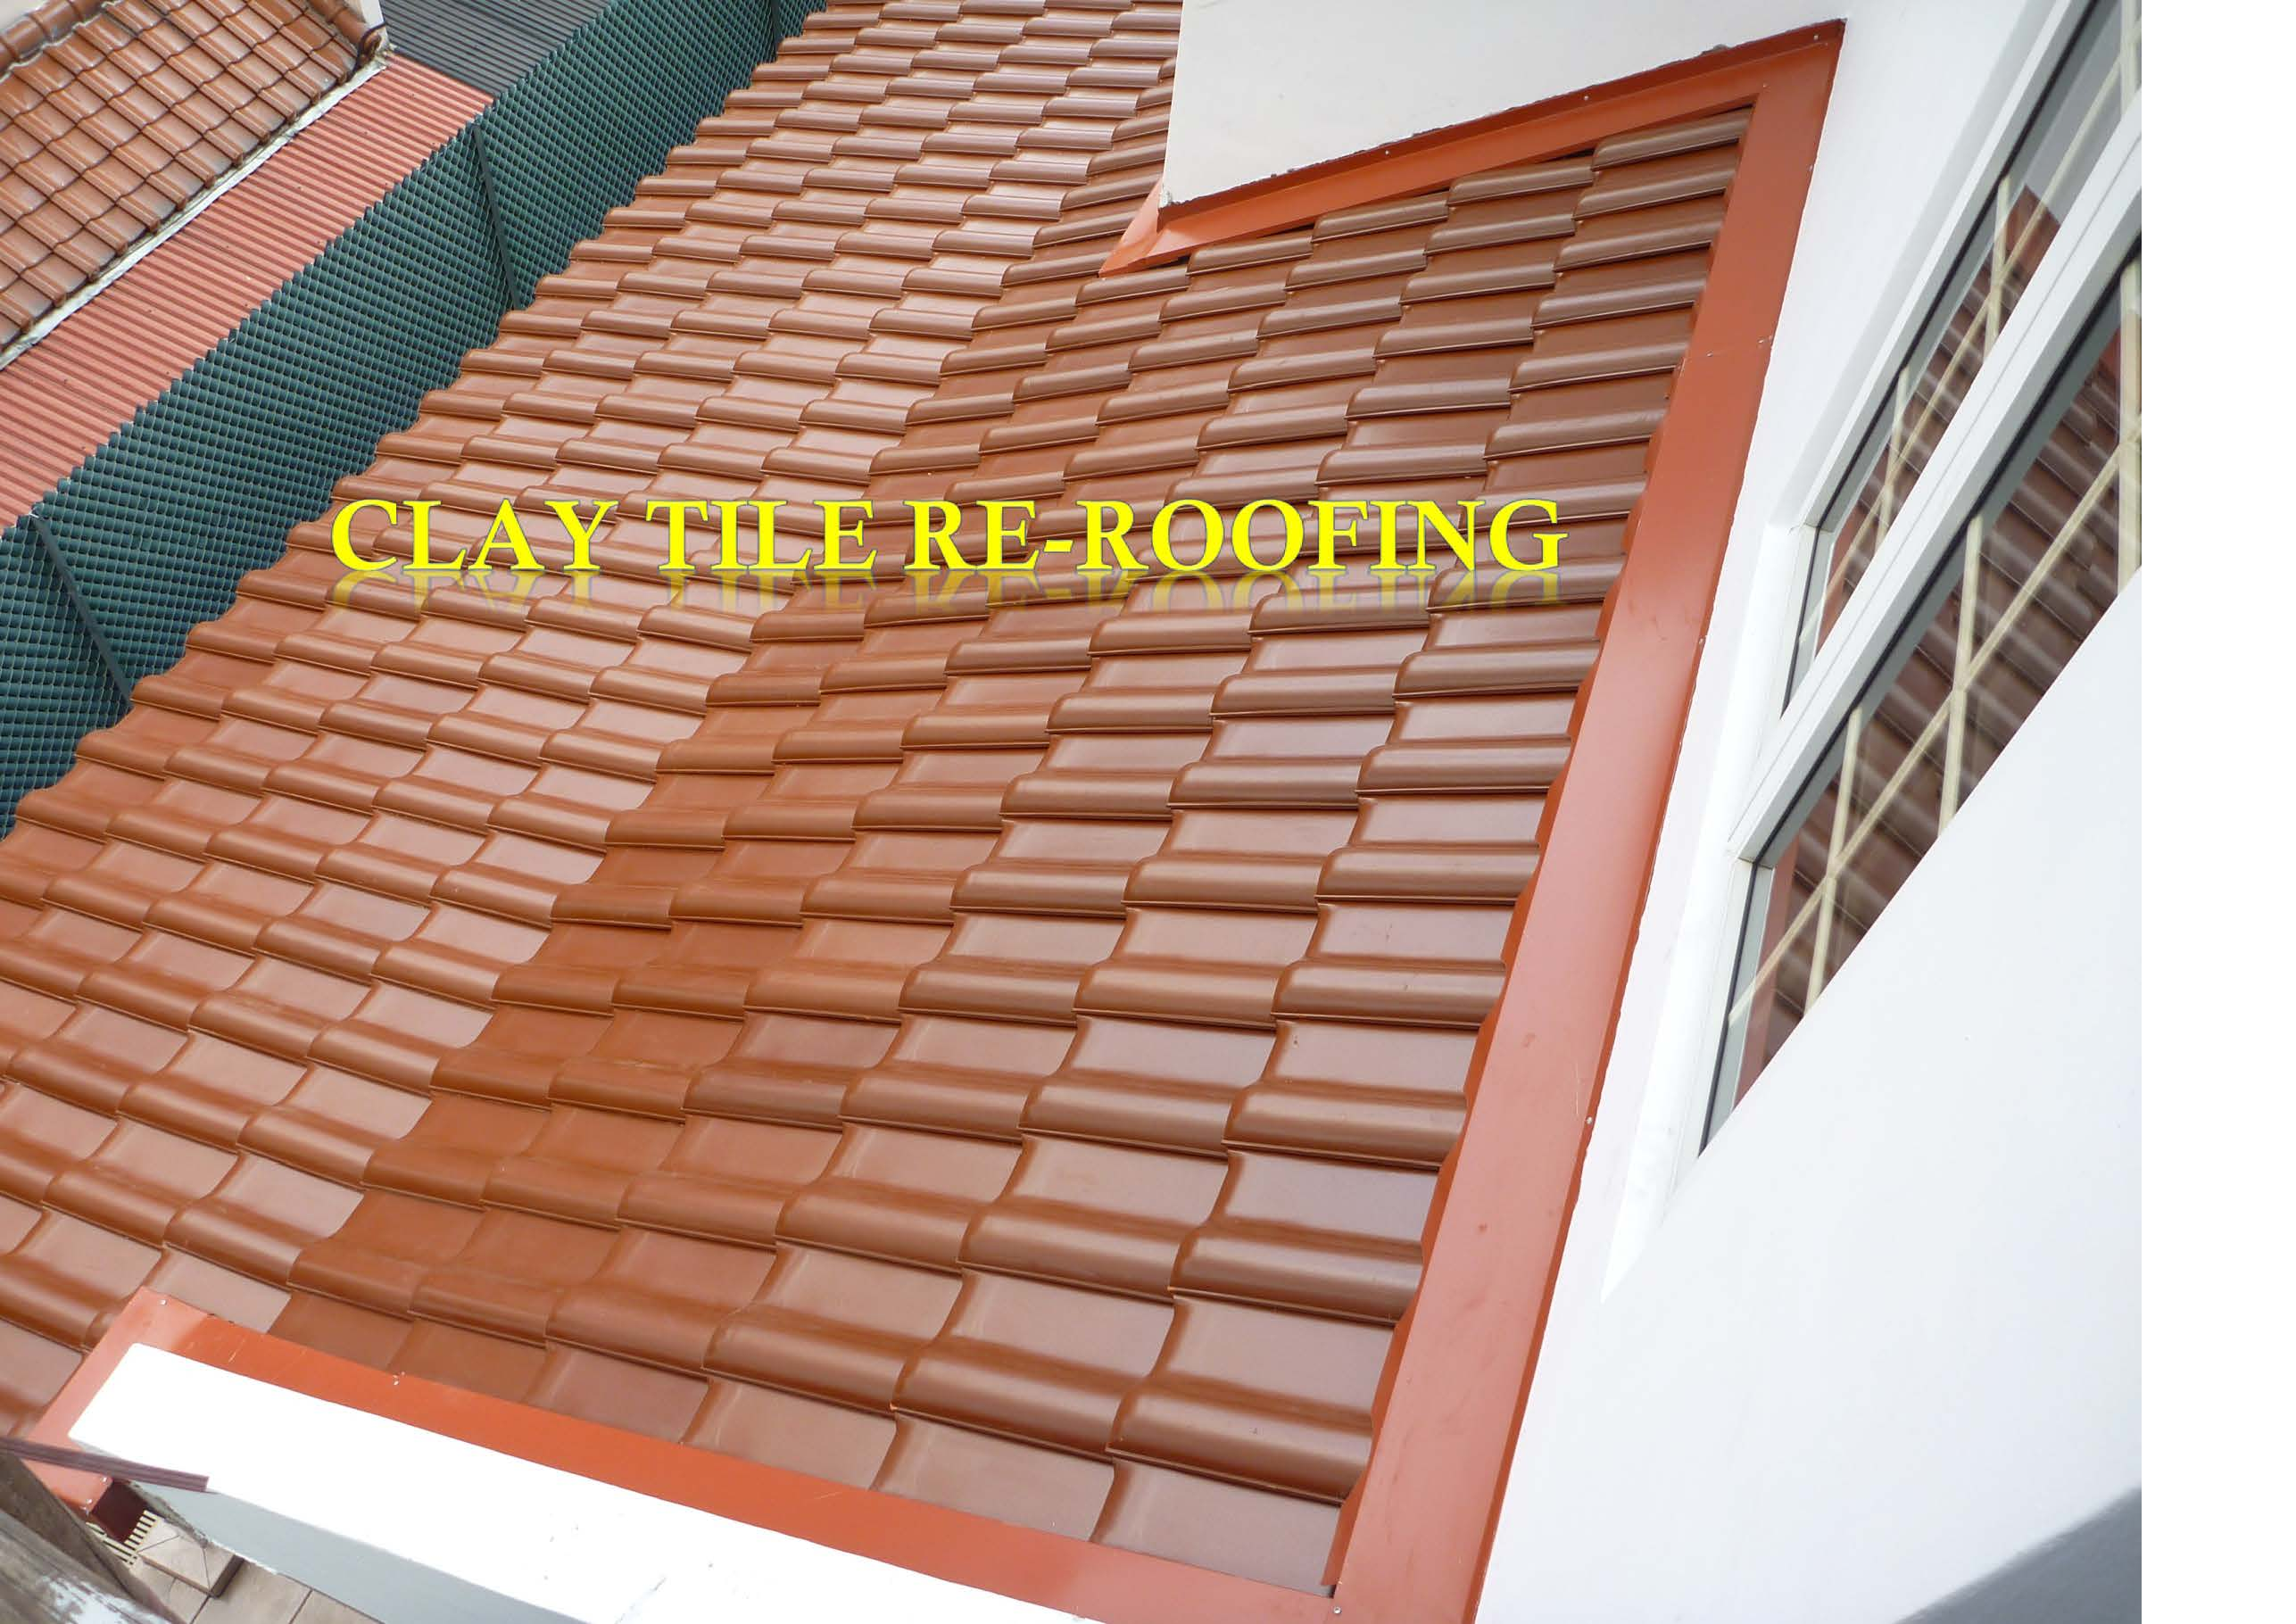 CLAY TILE ROOF RE-ROOFING